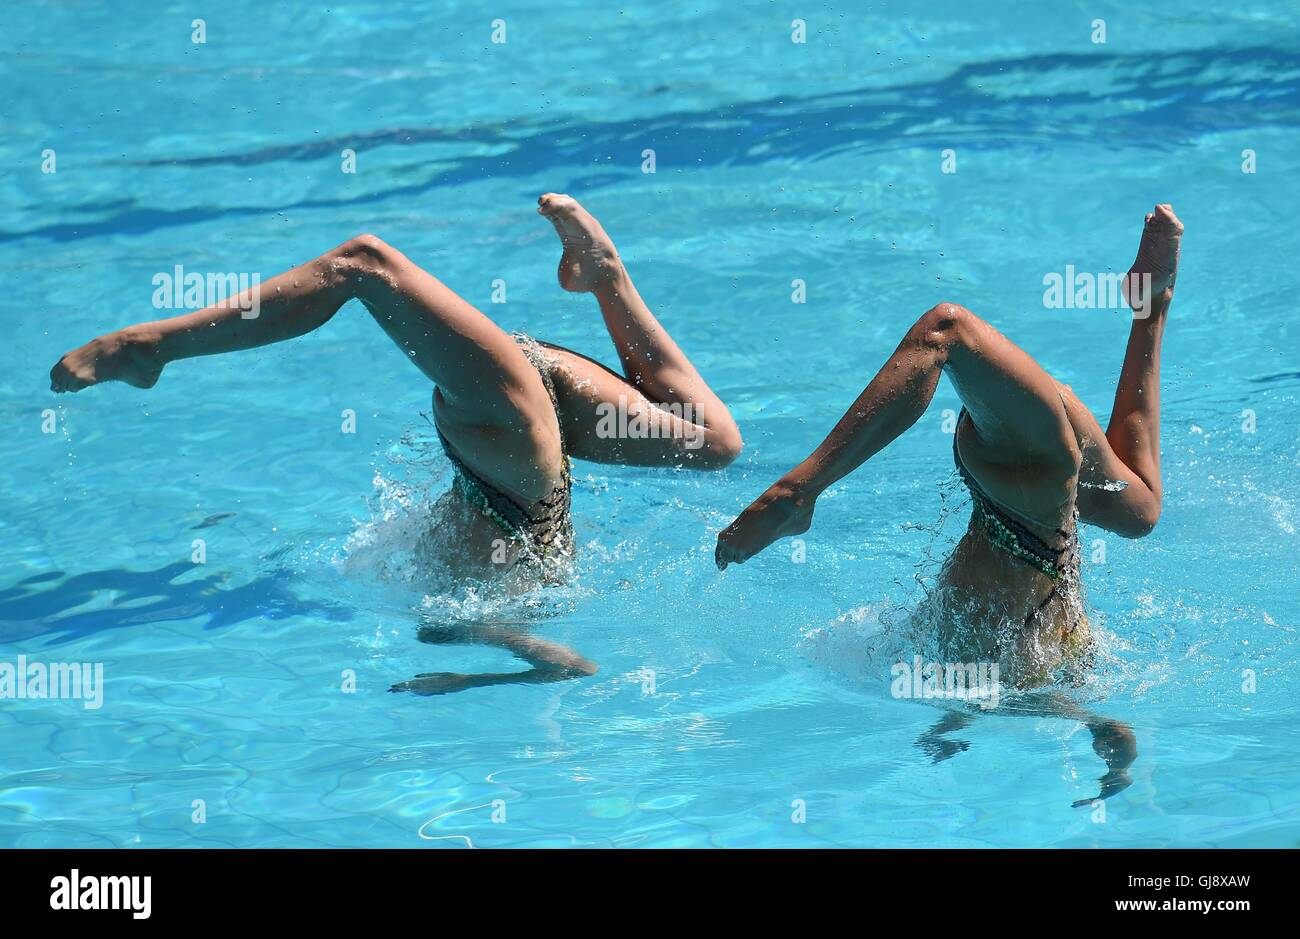 Rio de Janeiro, Brazil. 14th August, 2016. Katie Clark (GBR) and Olivia Frederici (GBR). Synchronised Swimming. - Stock Image